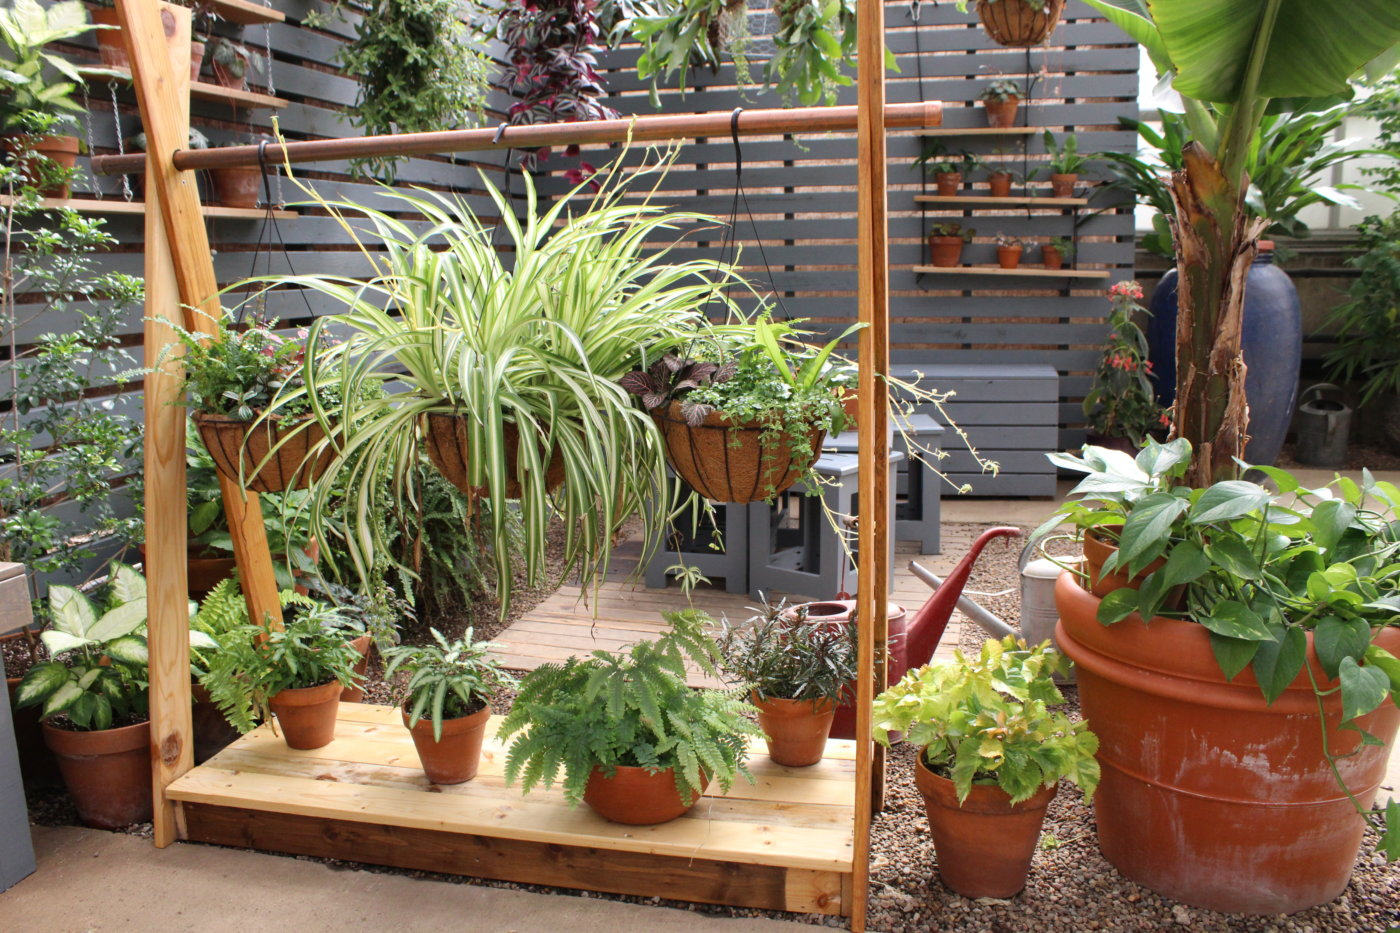 Hanging displays of container plants show how you can go vertical with your houseplants.